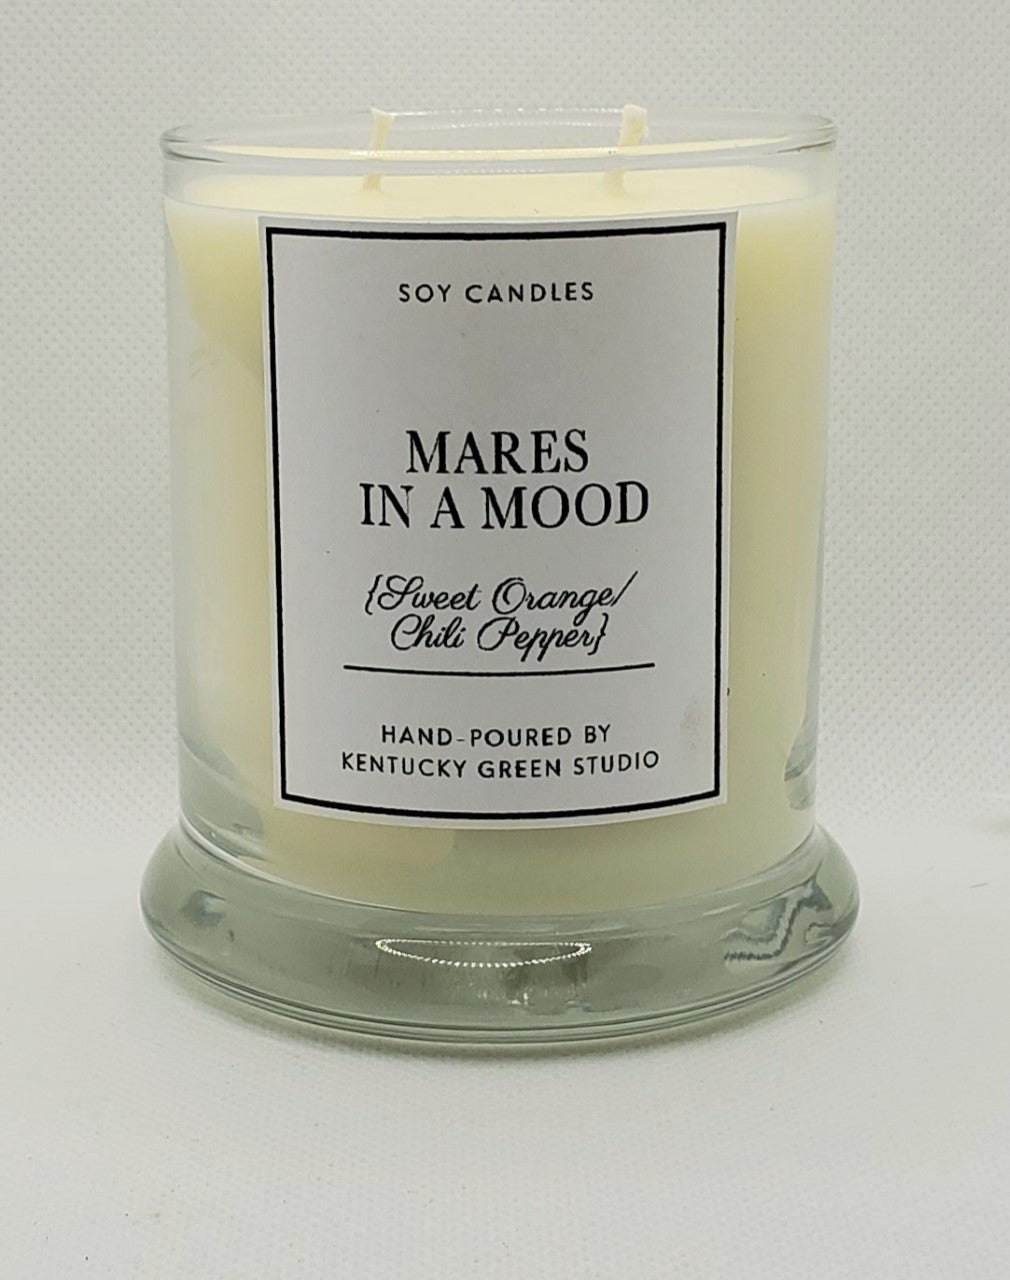 Mares in a Mood Soy Wax Candle